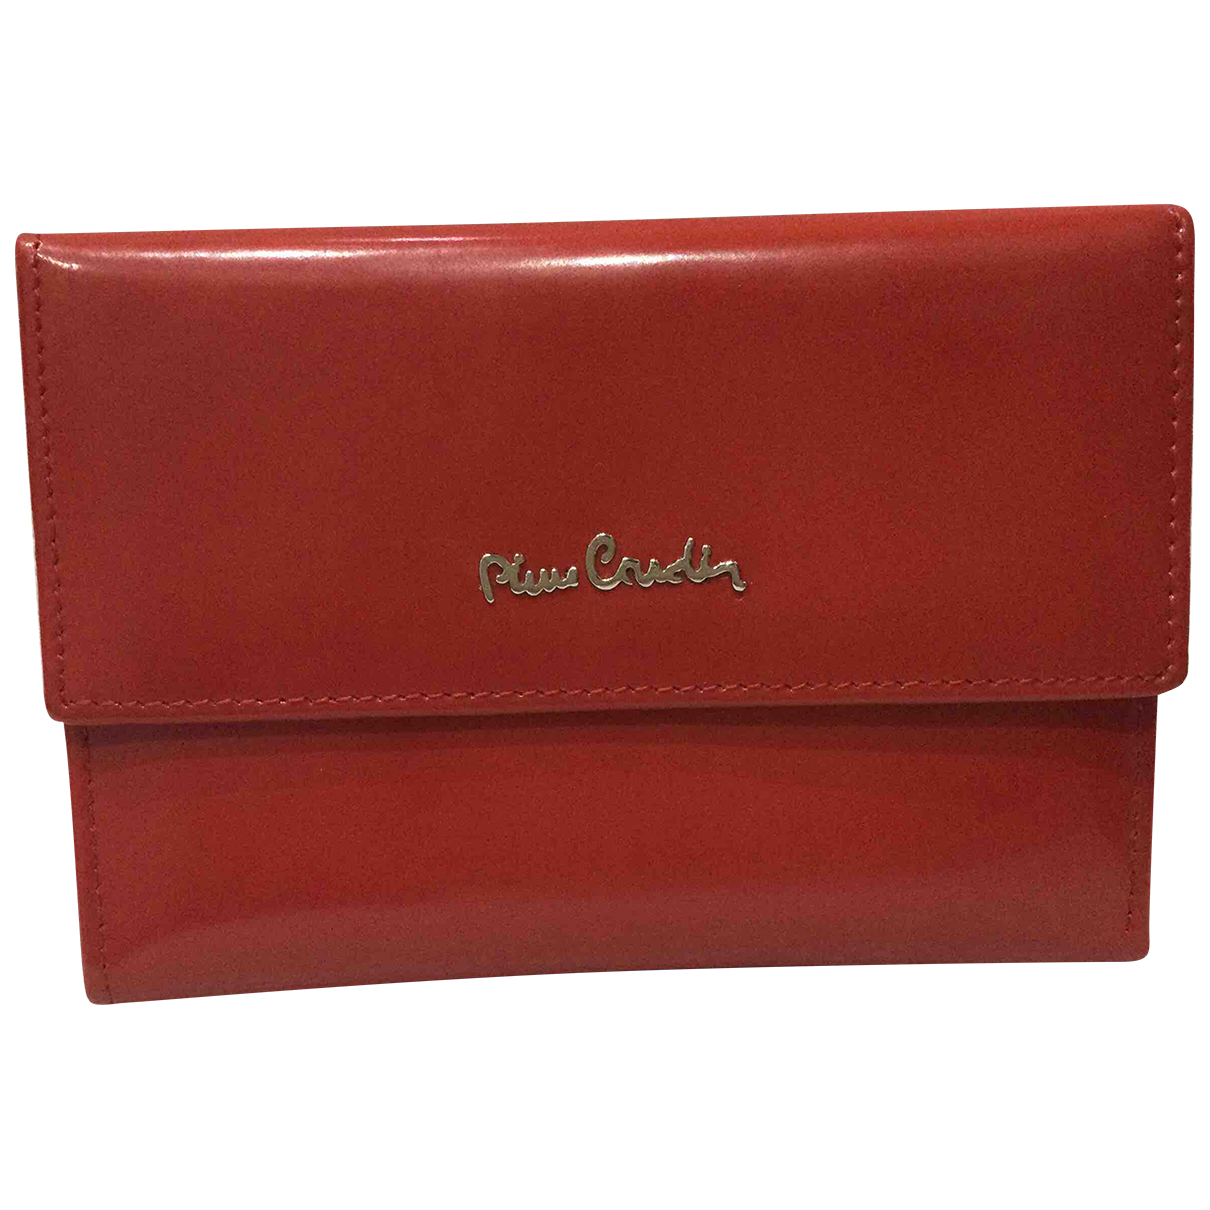 Pierre Cardin N Red Patent leather wallet for Women N